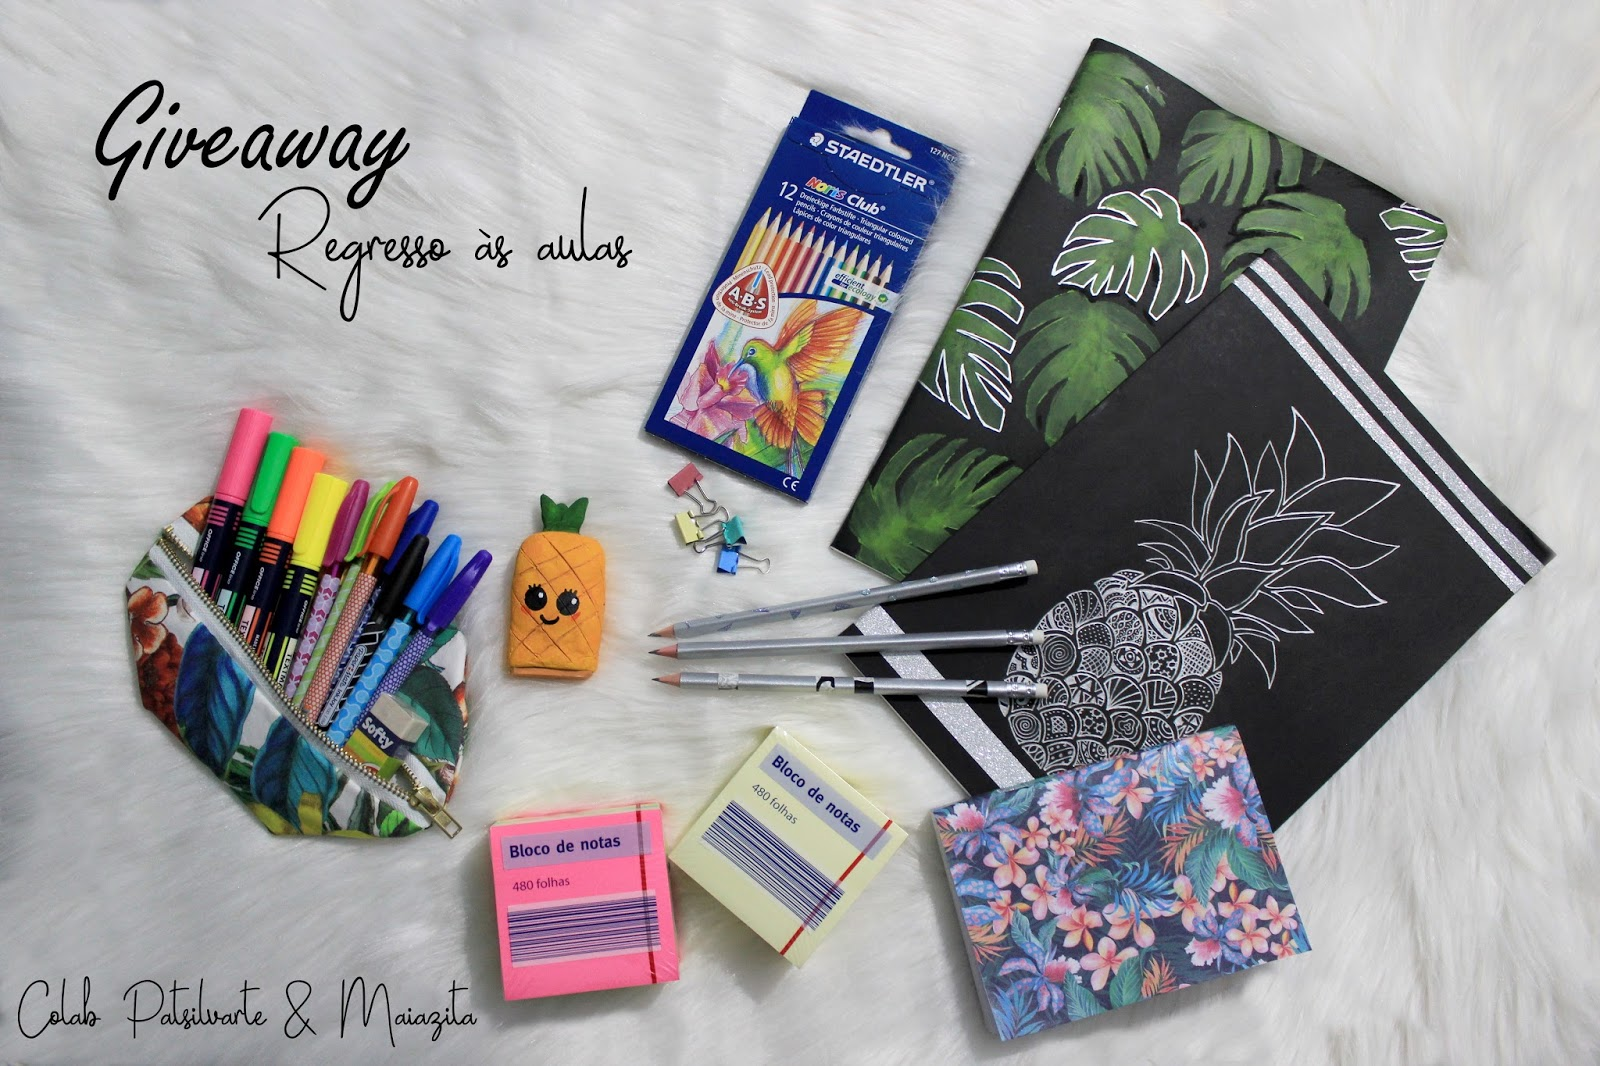 http://somerandomthoughtsandthings.blogspot.pt/2017/08/giveaway-regresso-as-aulas-colab.html